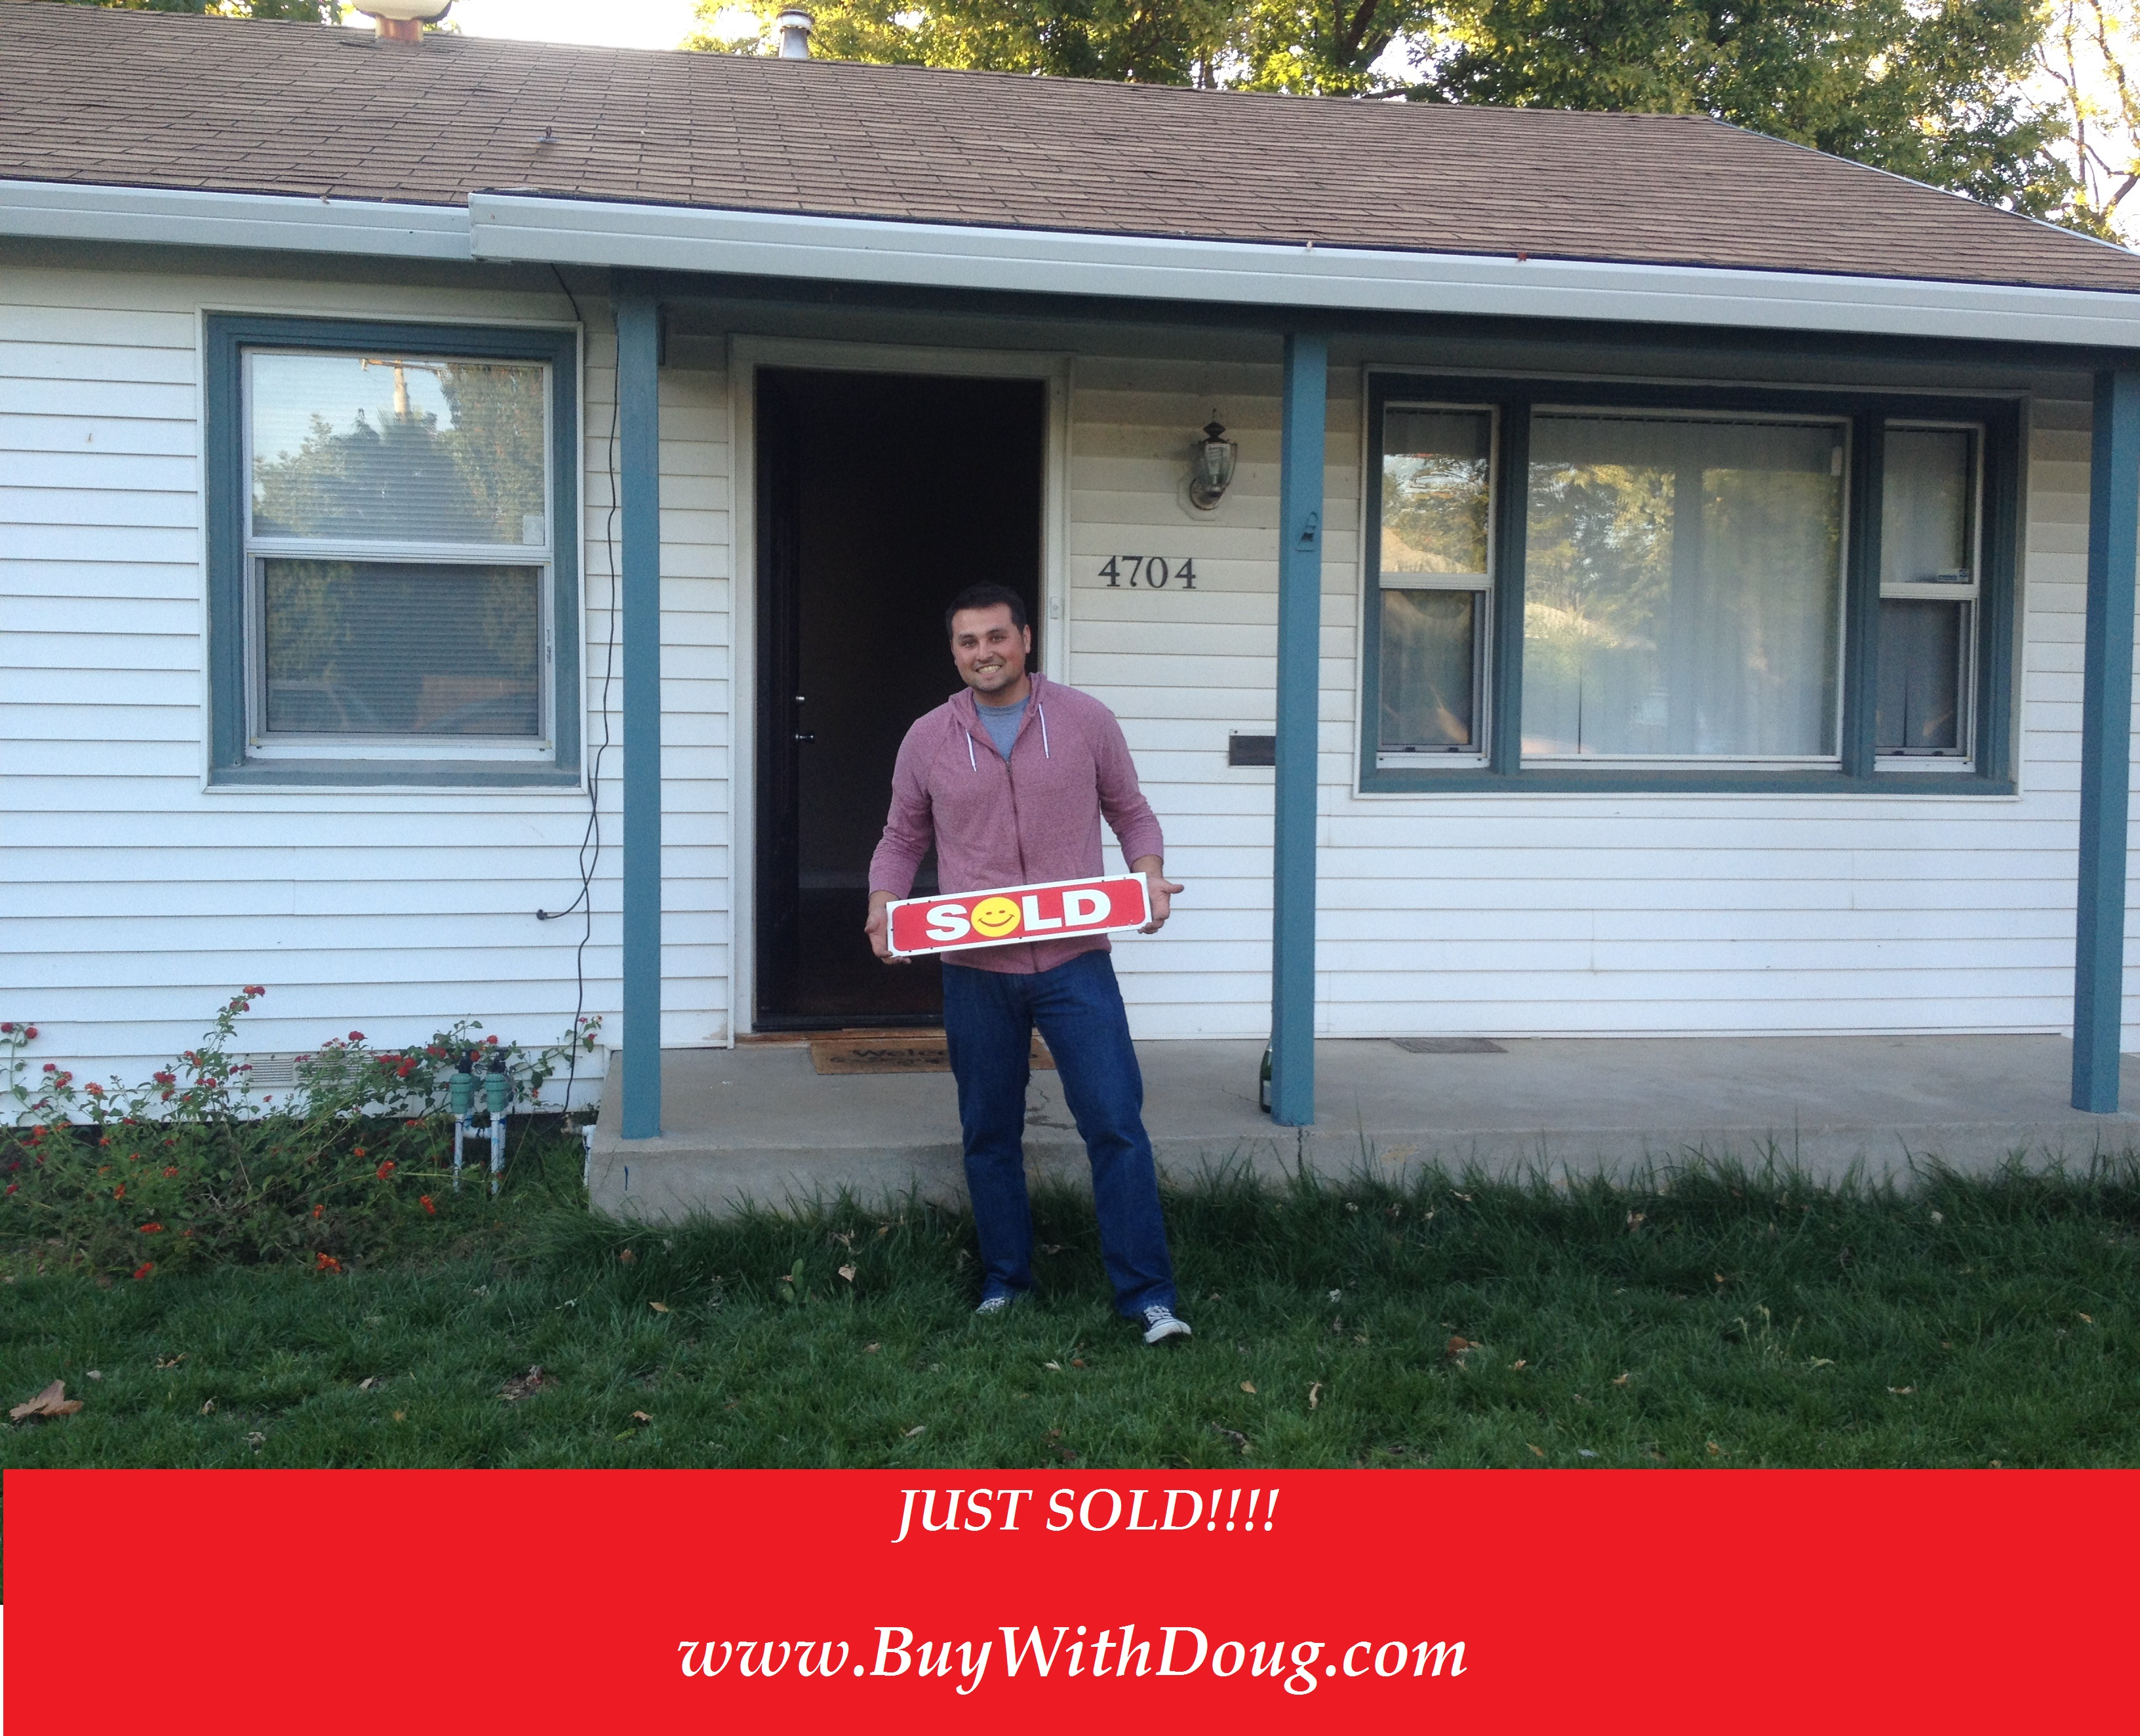 Just Sold - 4704 69th Street, Sacramento Ca 95820 - www.BuyWithDoug.com - Doug Reynolds Real Estate